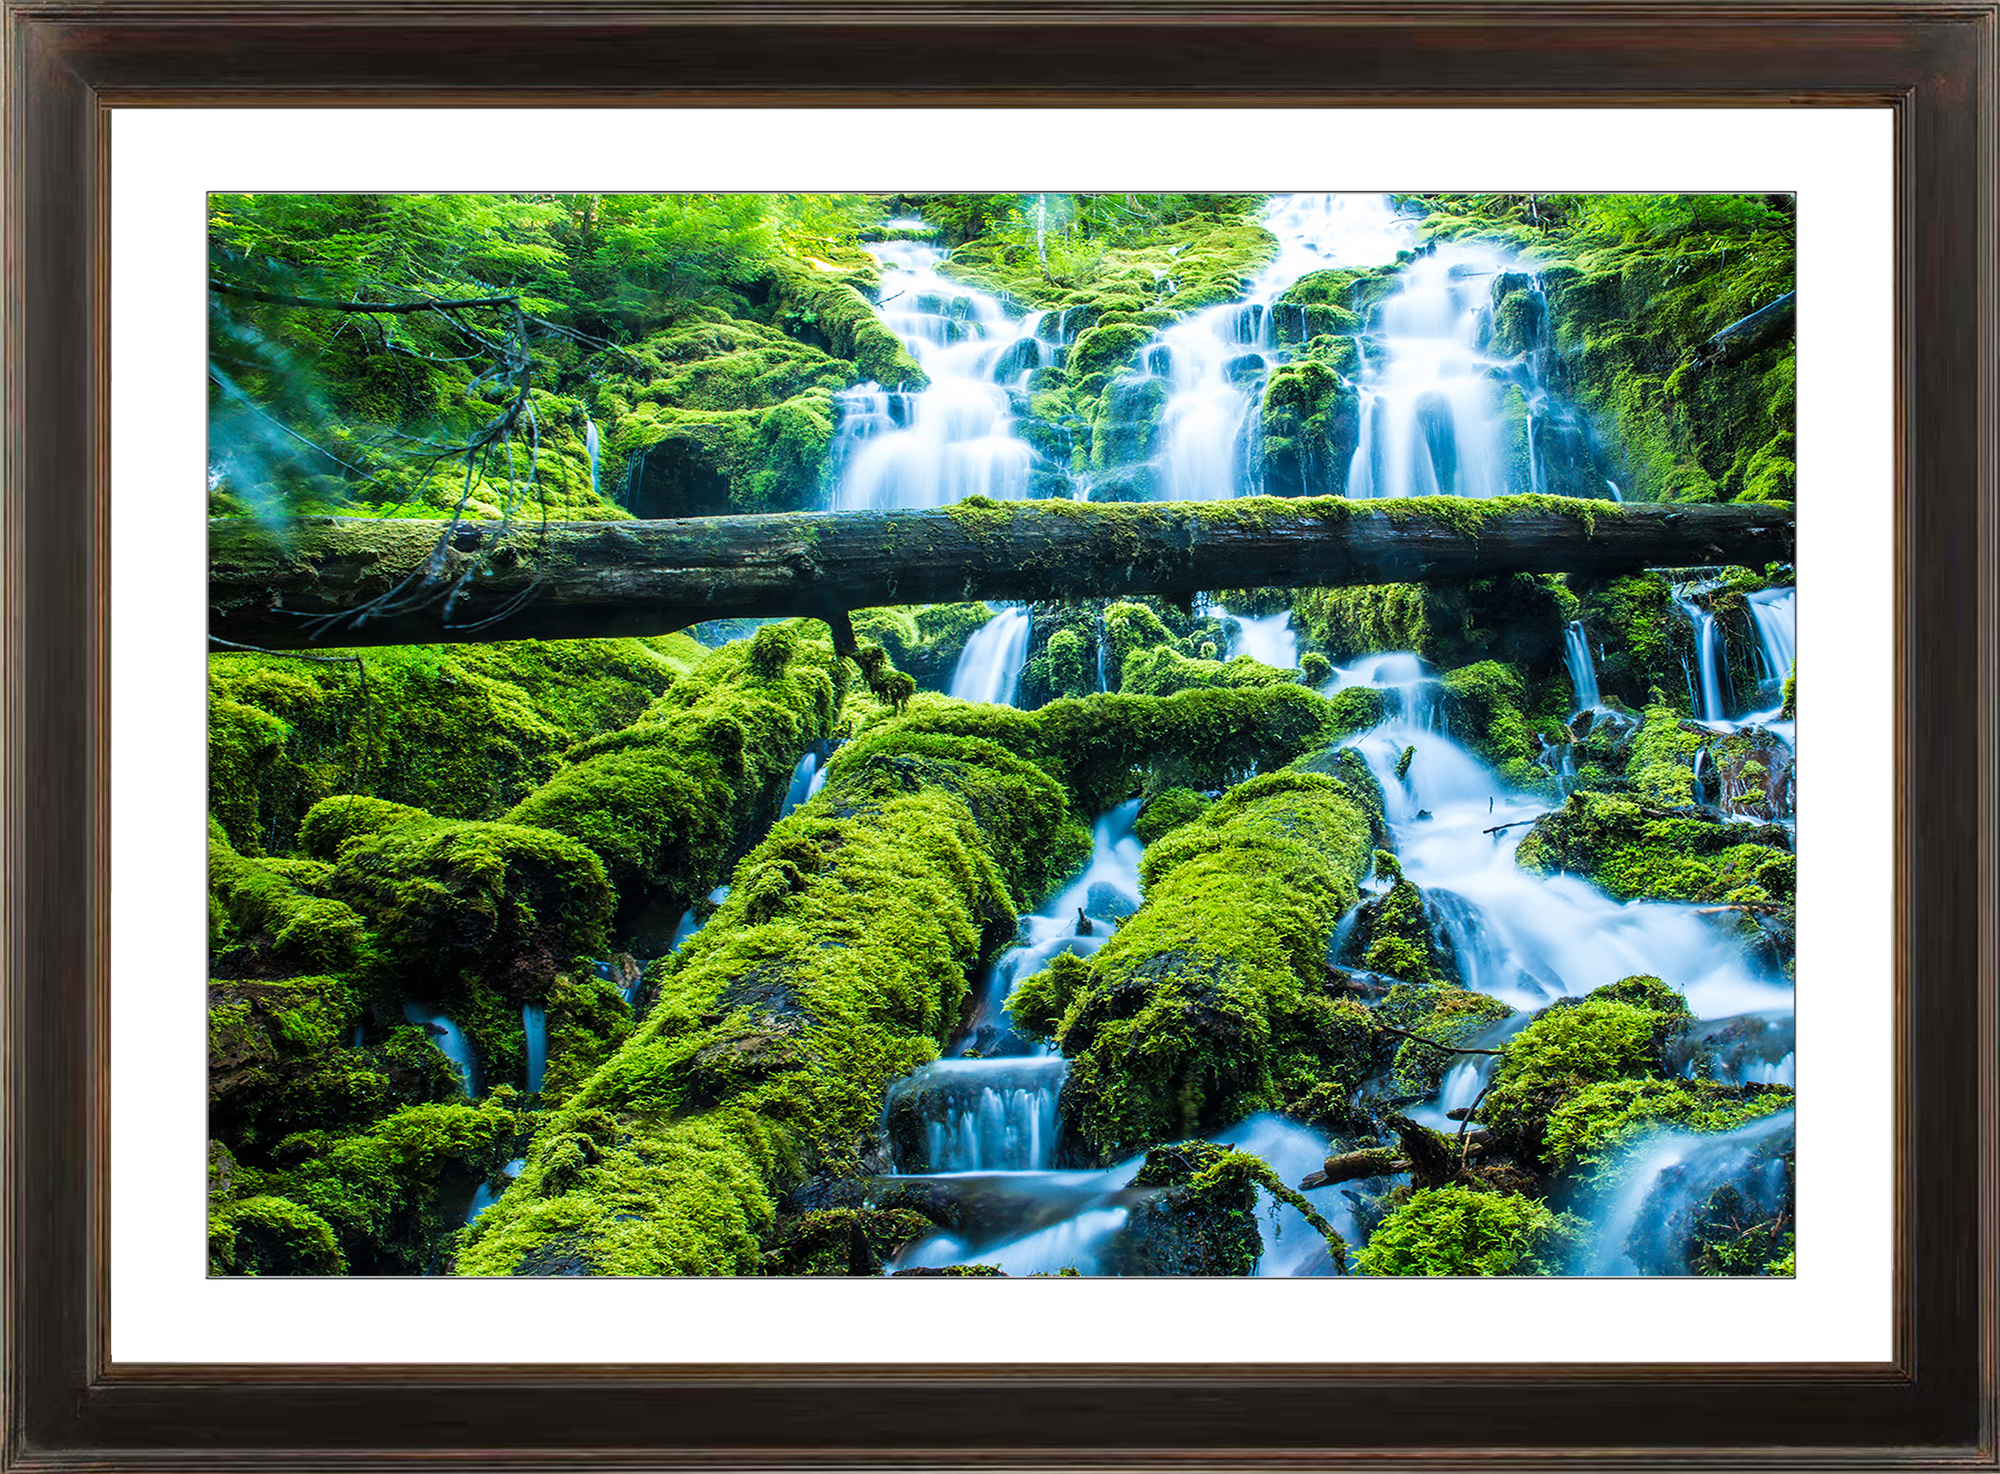 Framed Print of a Waterfall in Oregon